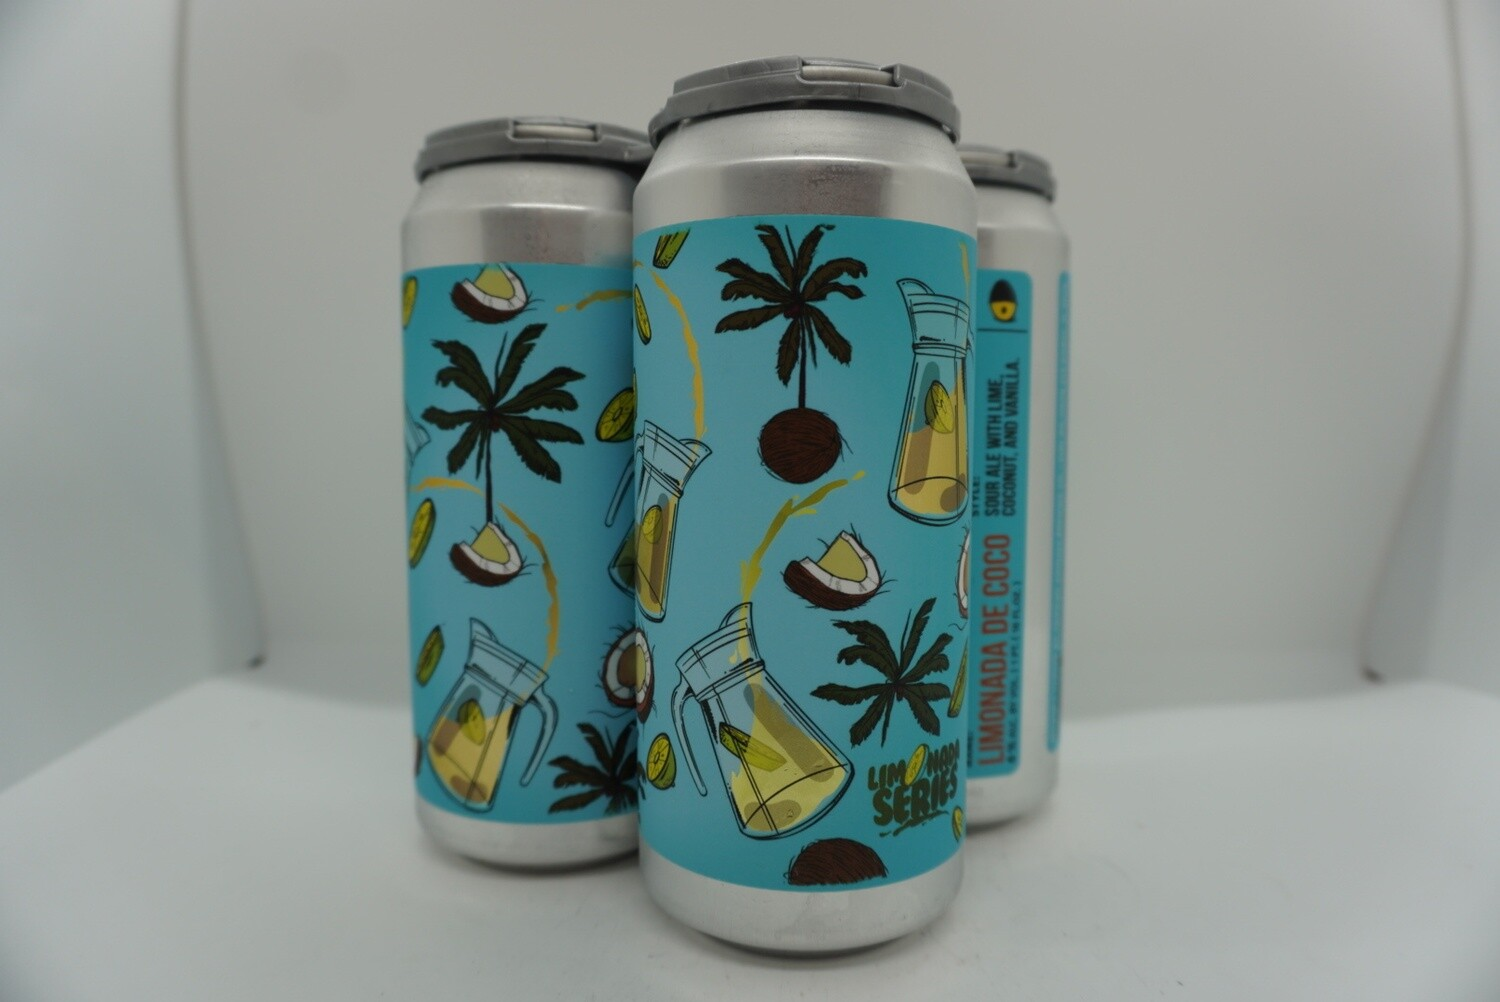 Tripping Animals - Limonada de Coco - Sour - 6% ABV - 4 Pack